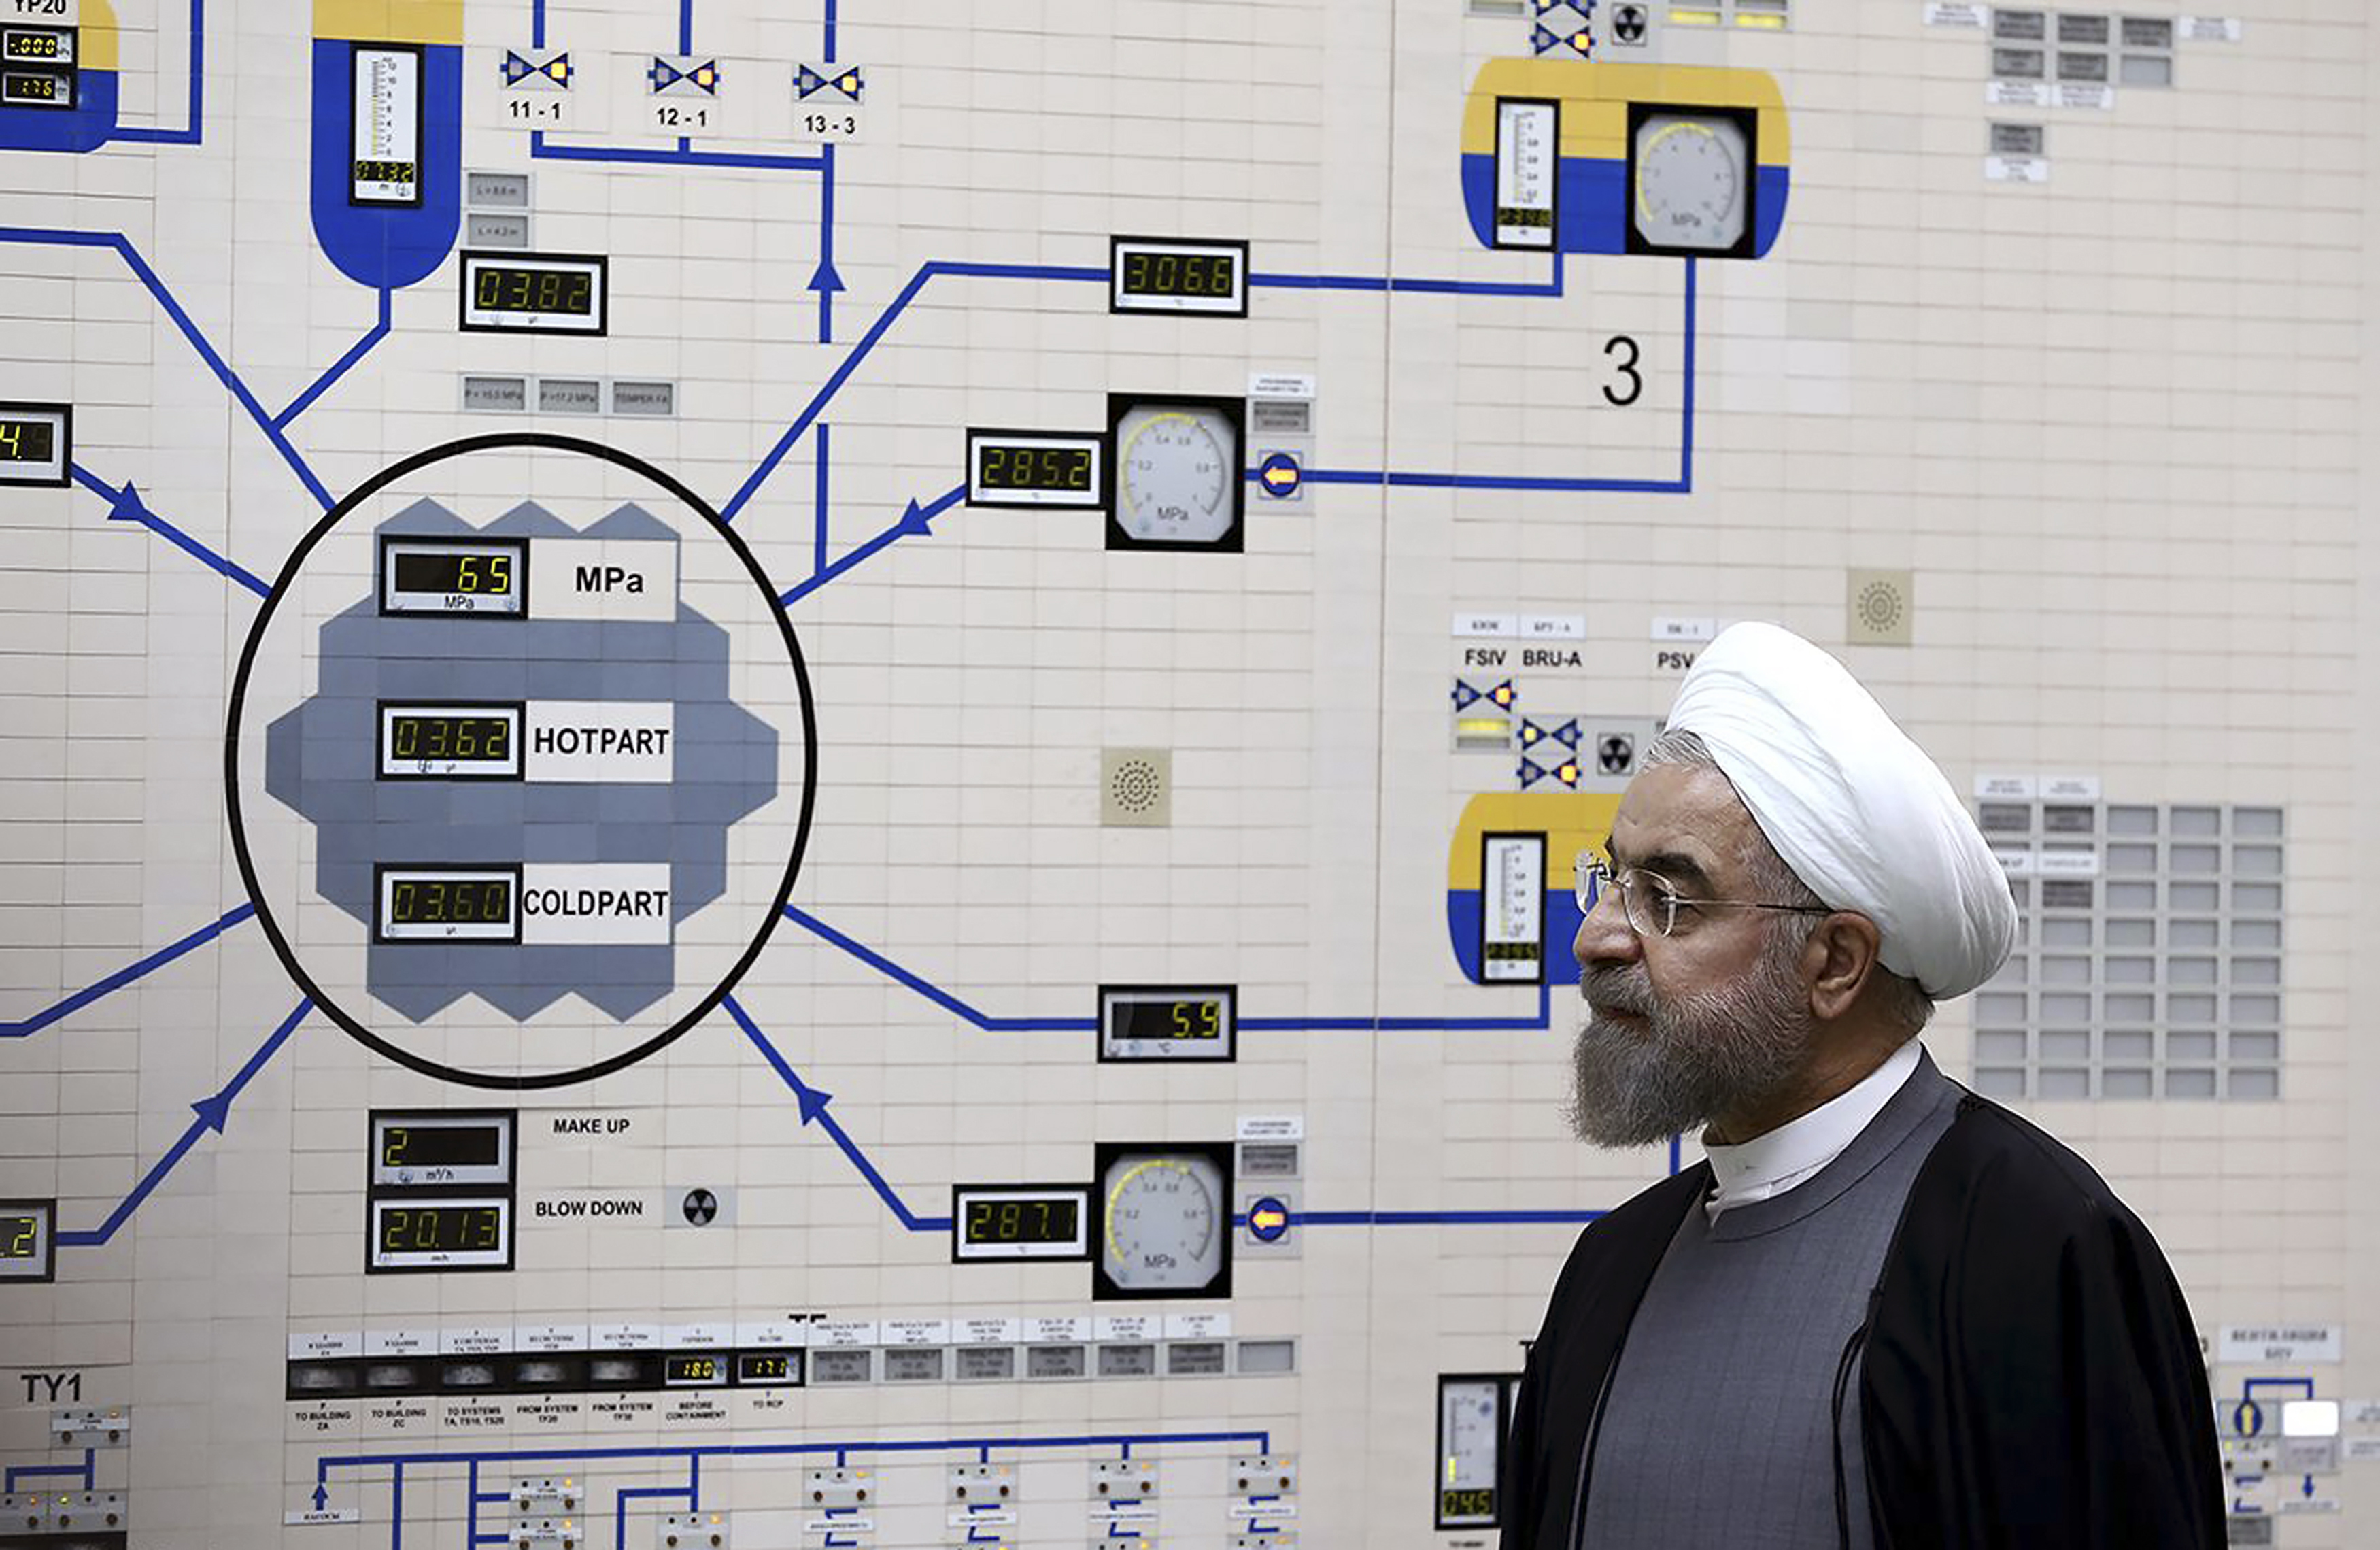 AP EXPLAINS: Irans nuclear program as 2015 deal unravels